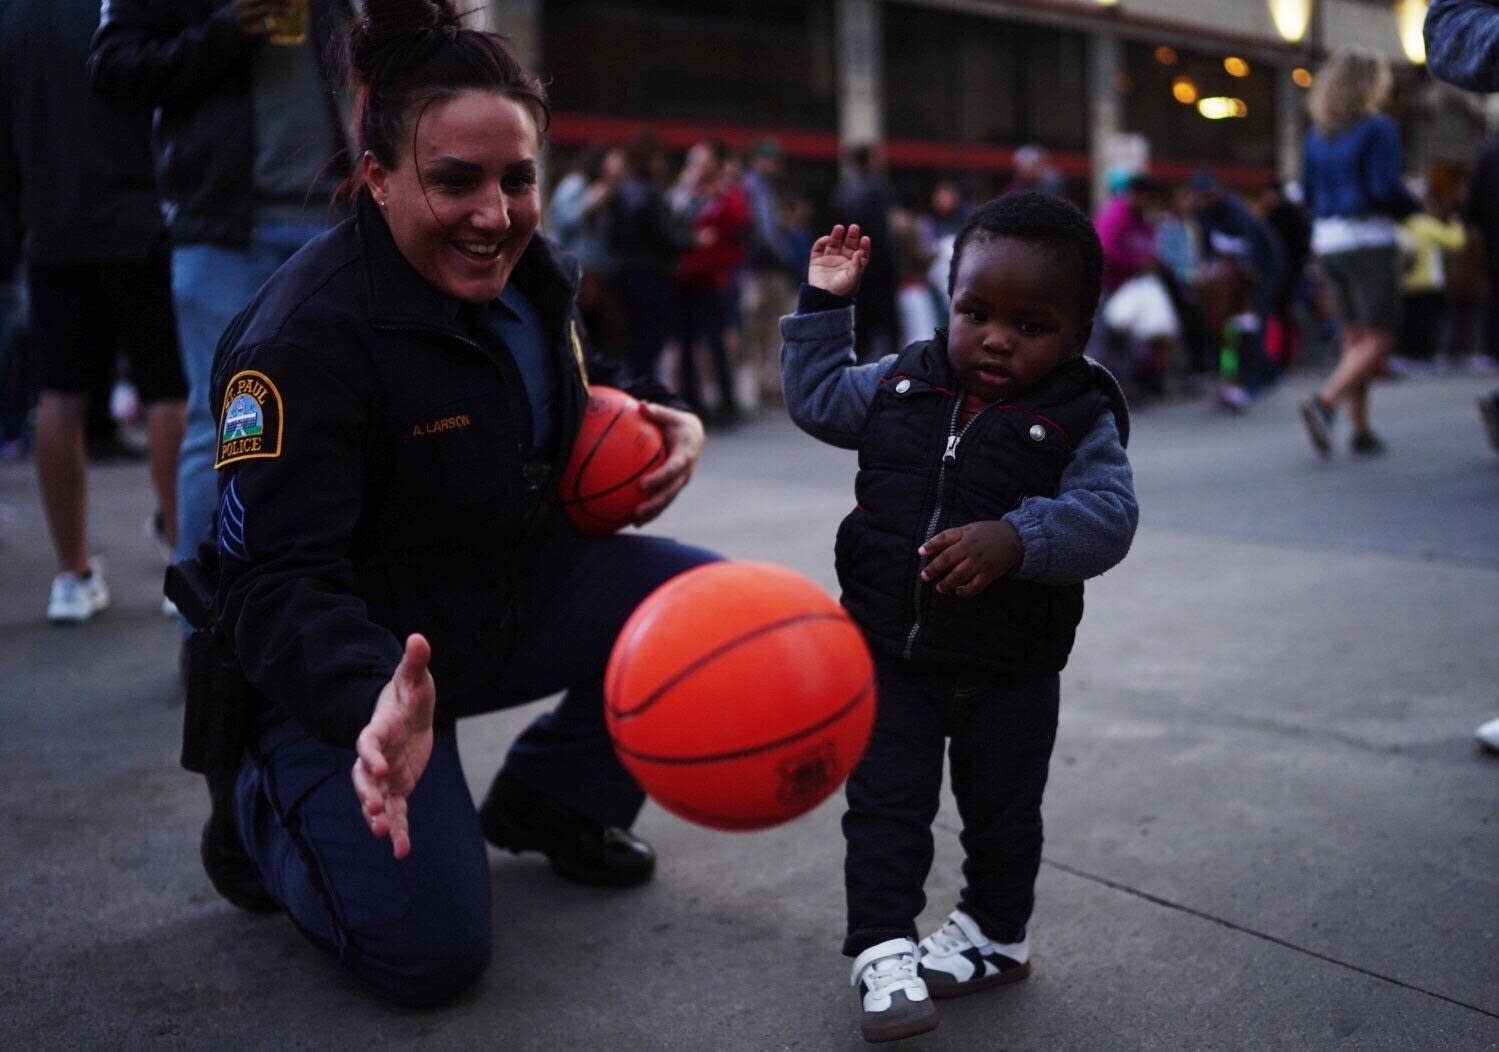 St. Paul Police Sgt. Amber Larson plays with 18-month-old Evance